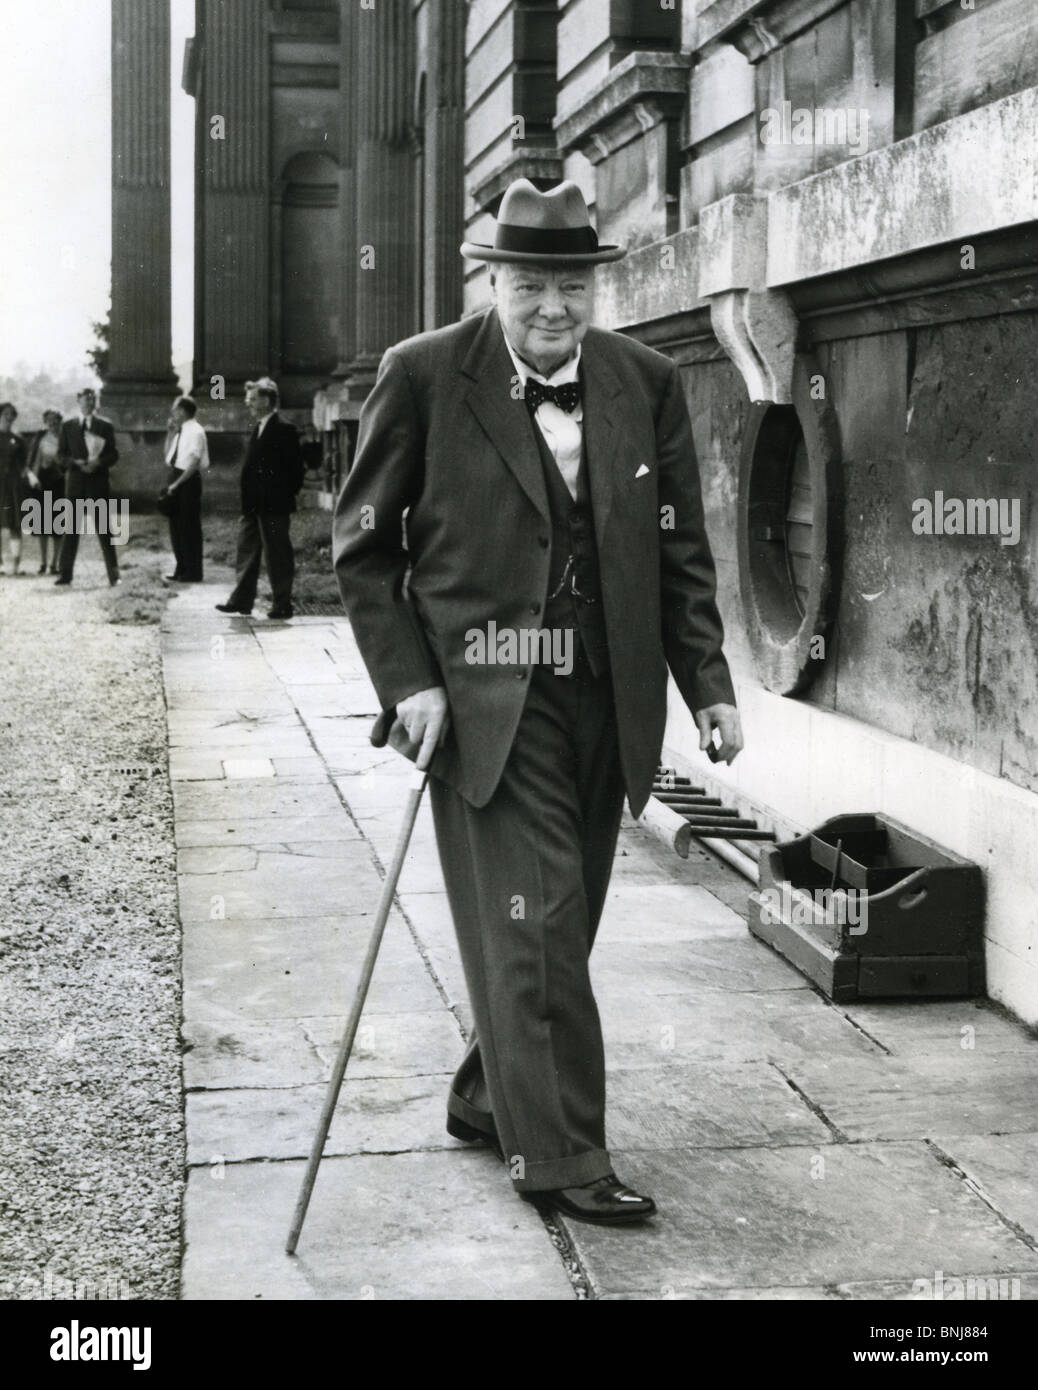 SIR WINSTON CHUCHILL re-visiting his birthplace at Blenheim including the room in which he was born - Stock Image